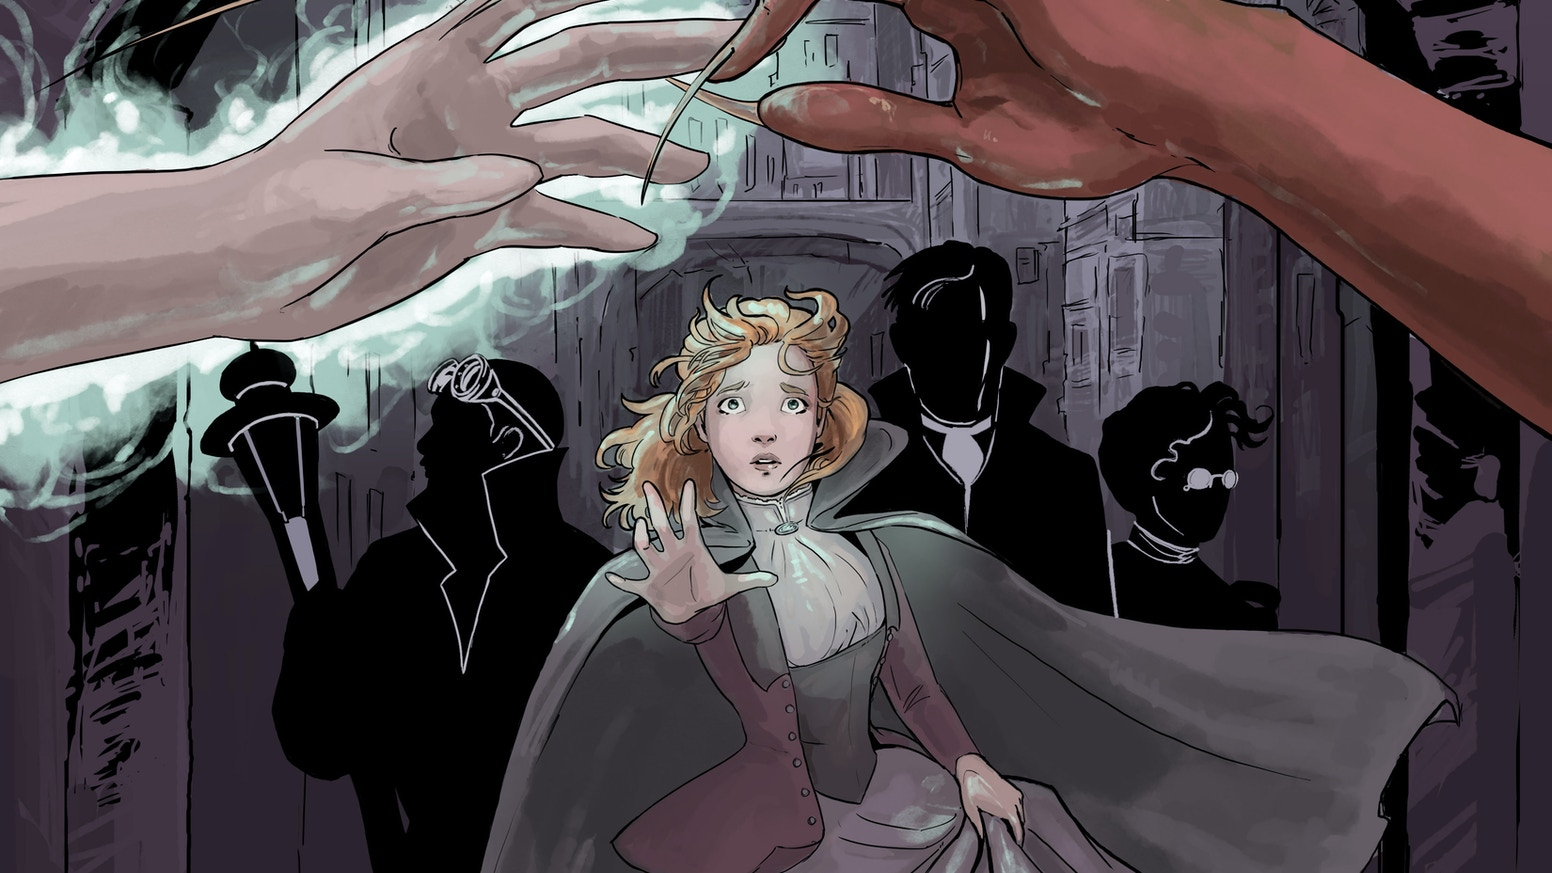 Steampunk! Demons! Ghosts!  A disturbing dream leads Caitlin and the team to face off with a new enemy.